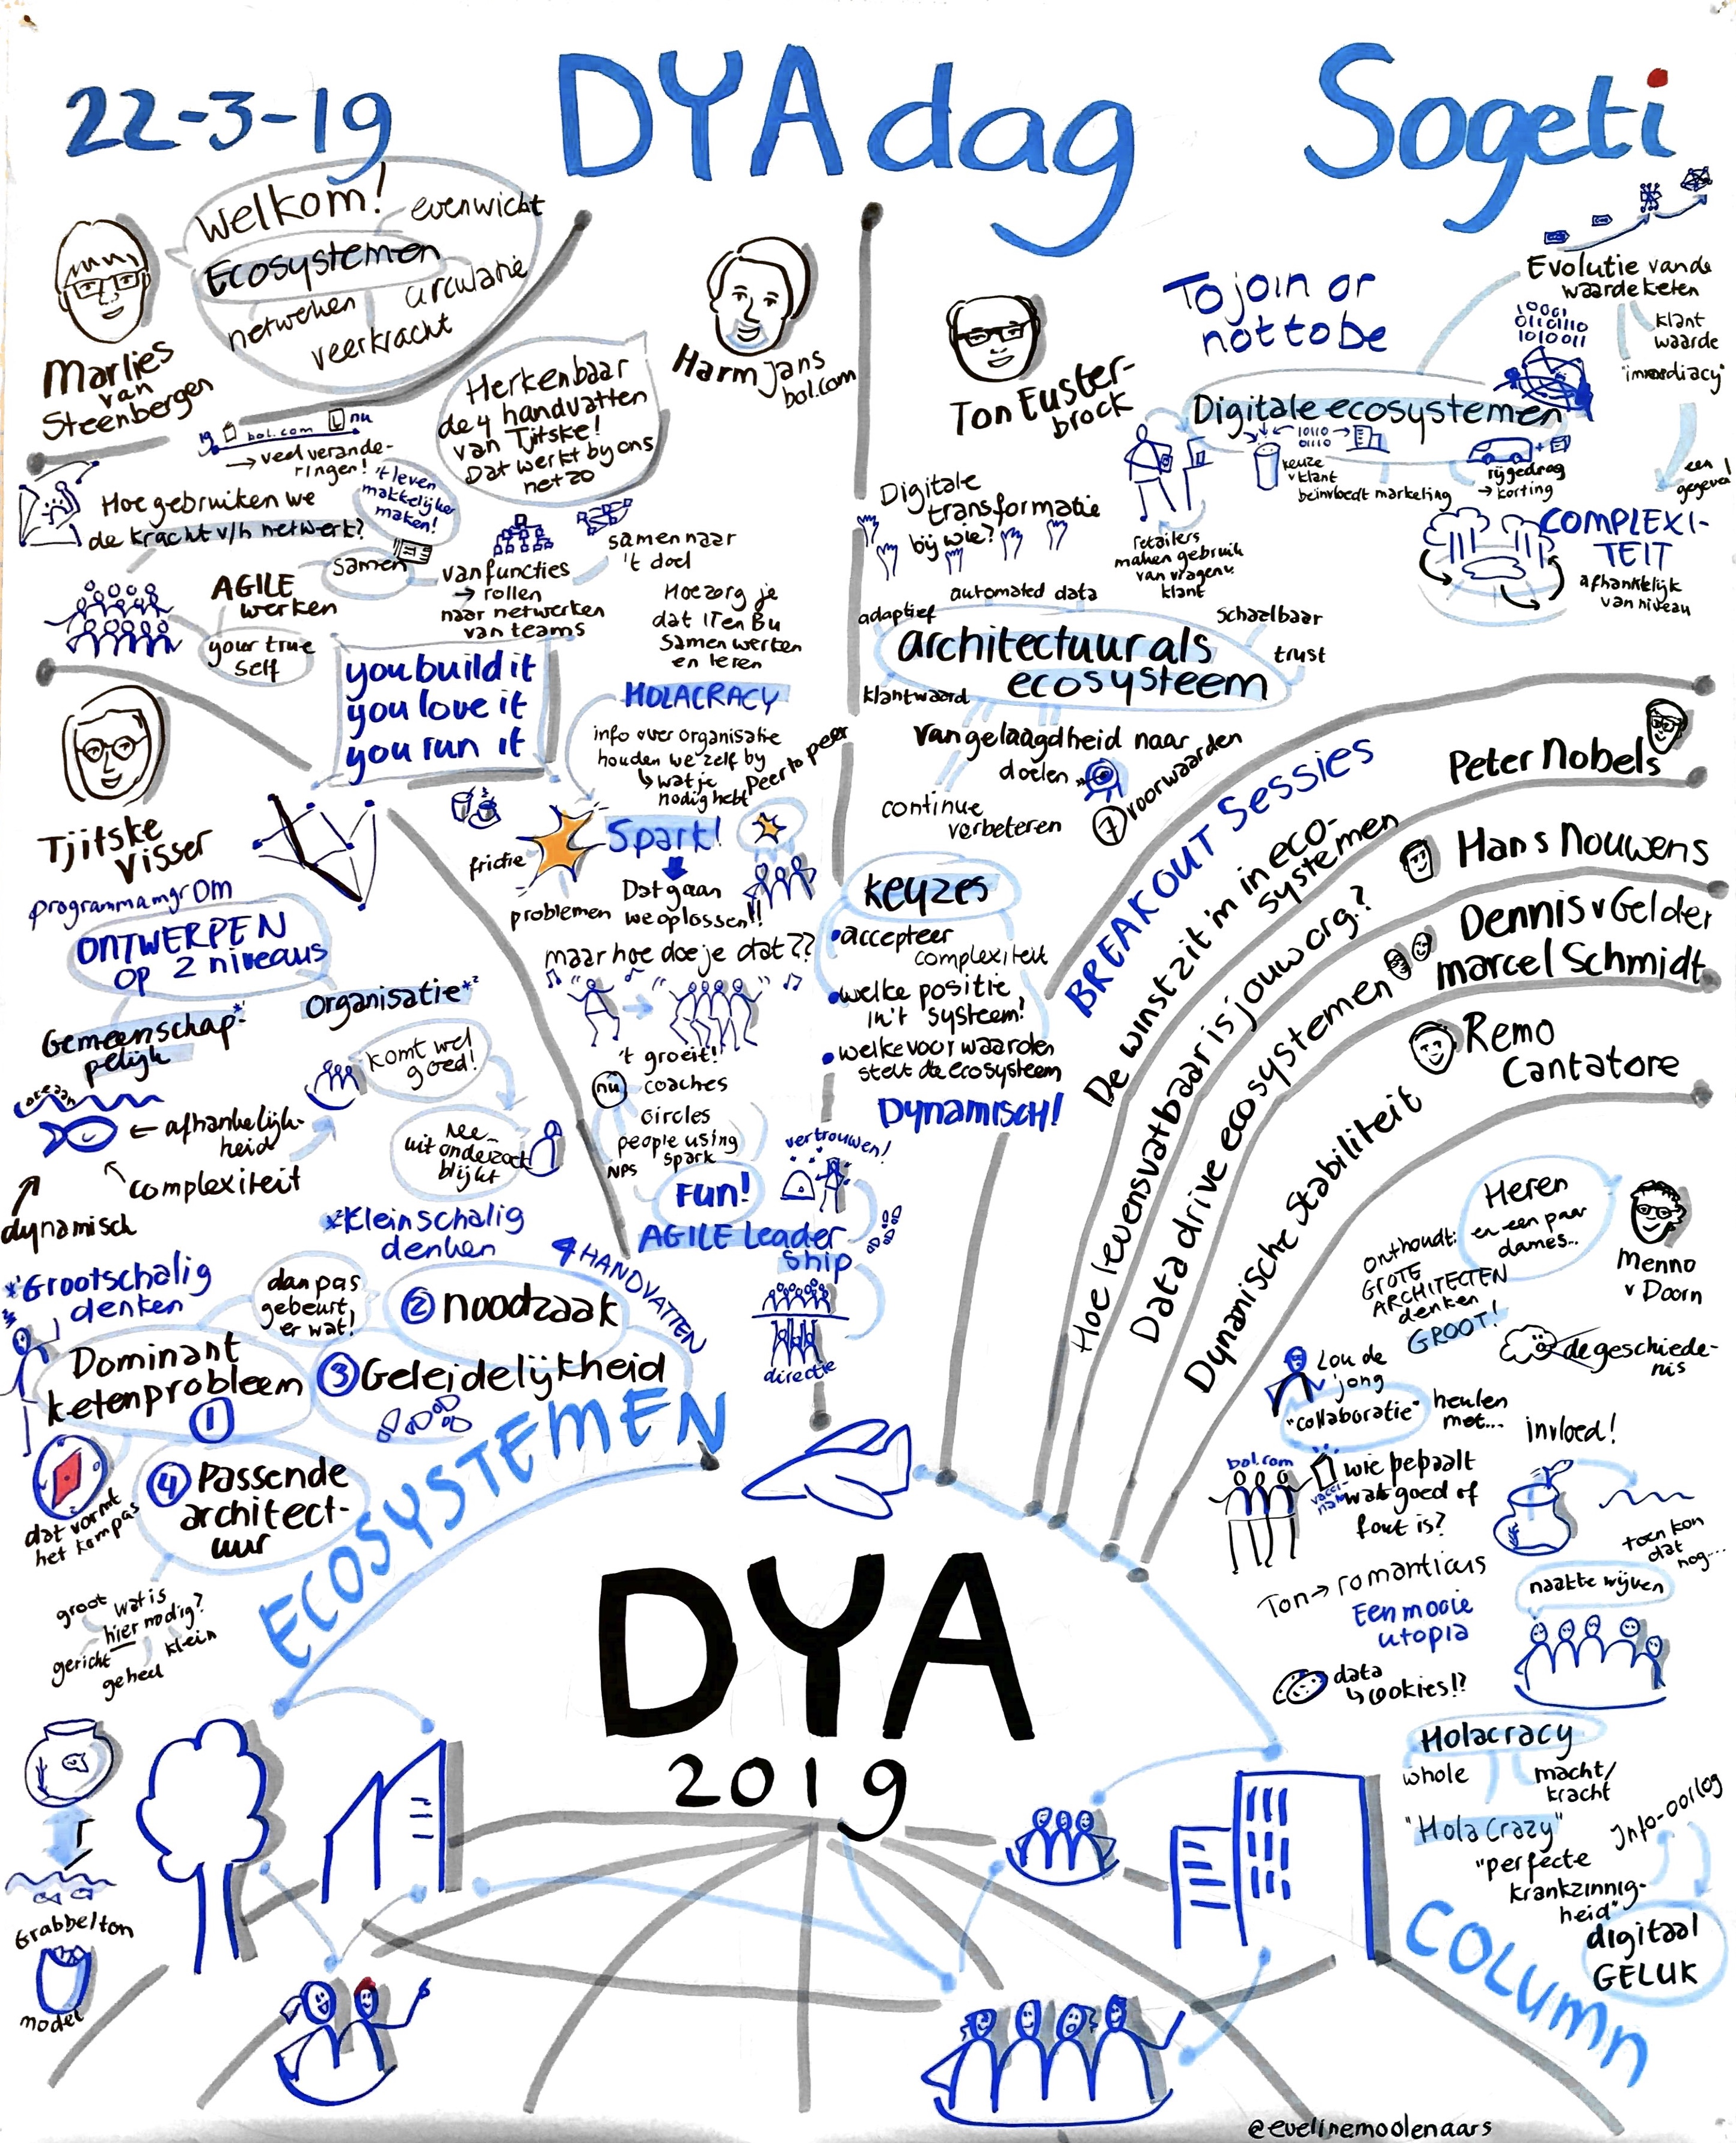 DYA Dag Visual Overview